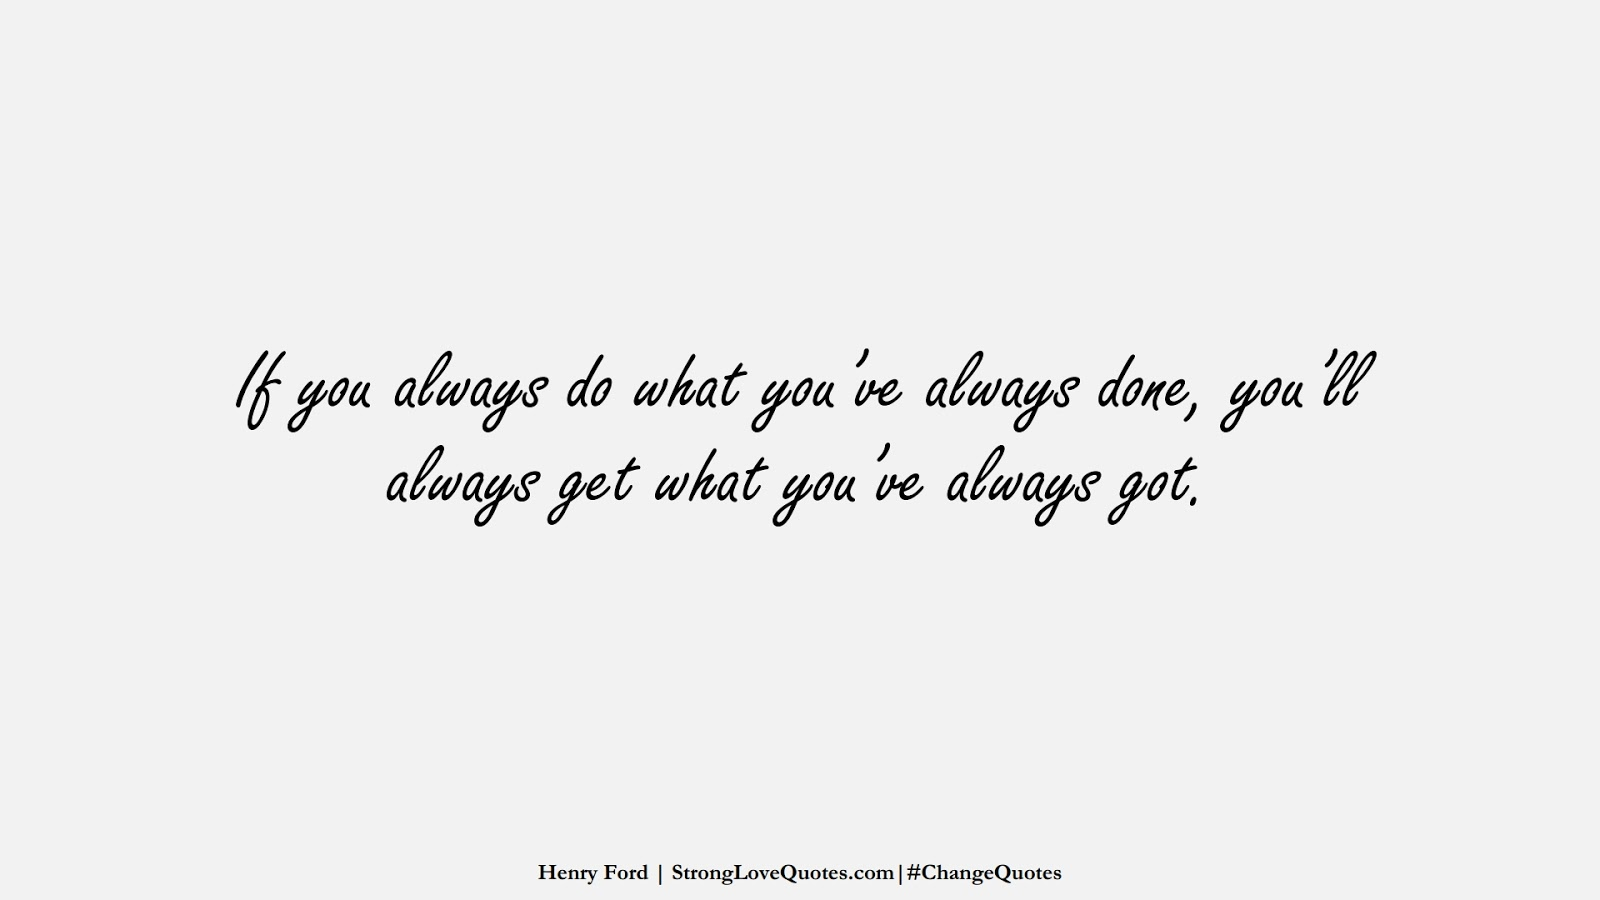 If you always do what you've always done, you'll always get what you've always got. (Henry Ford);  #ChangeQuotes